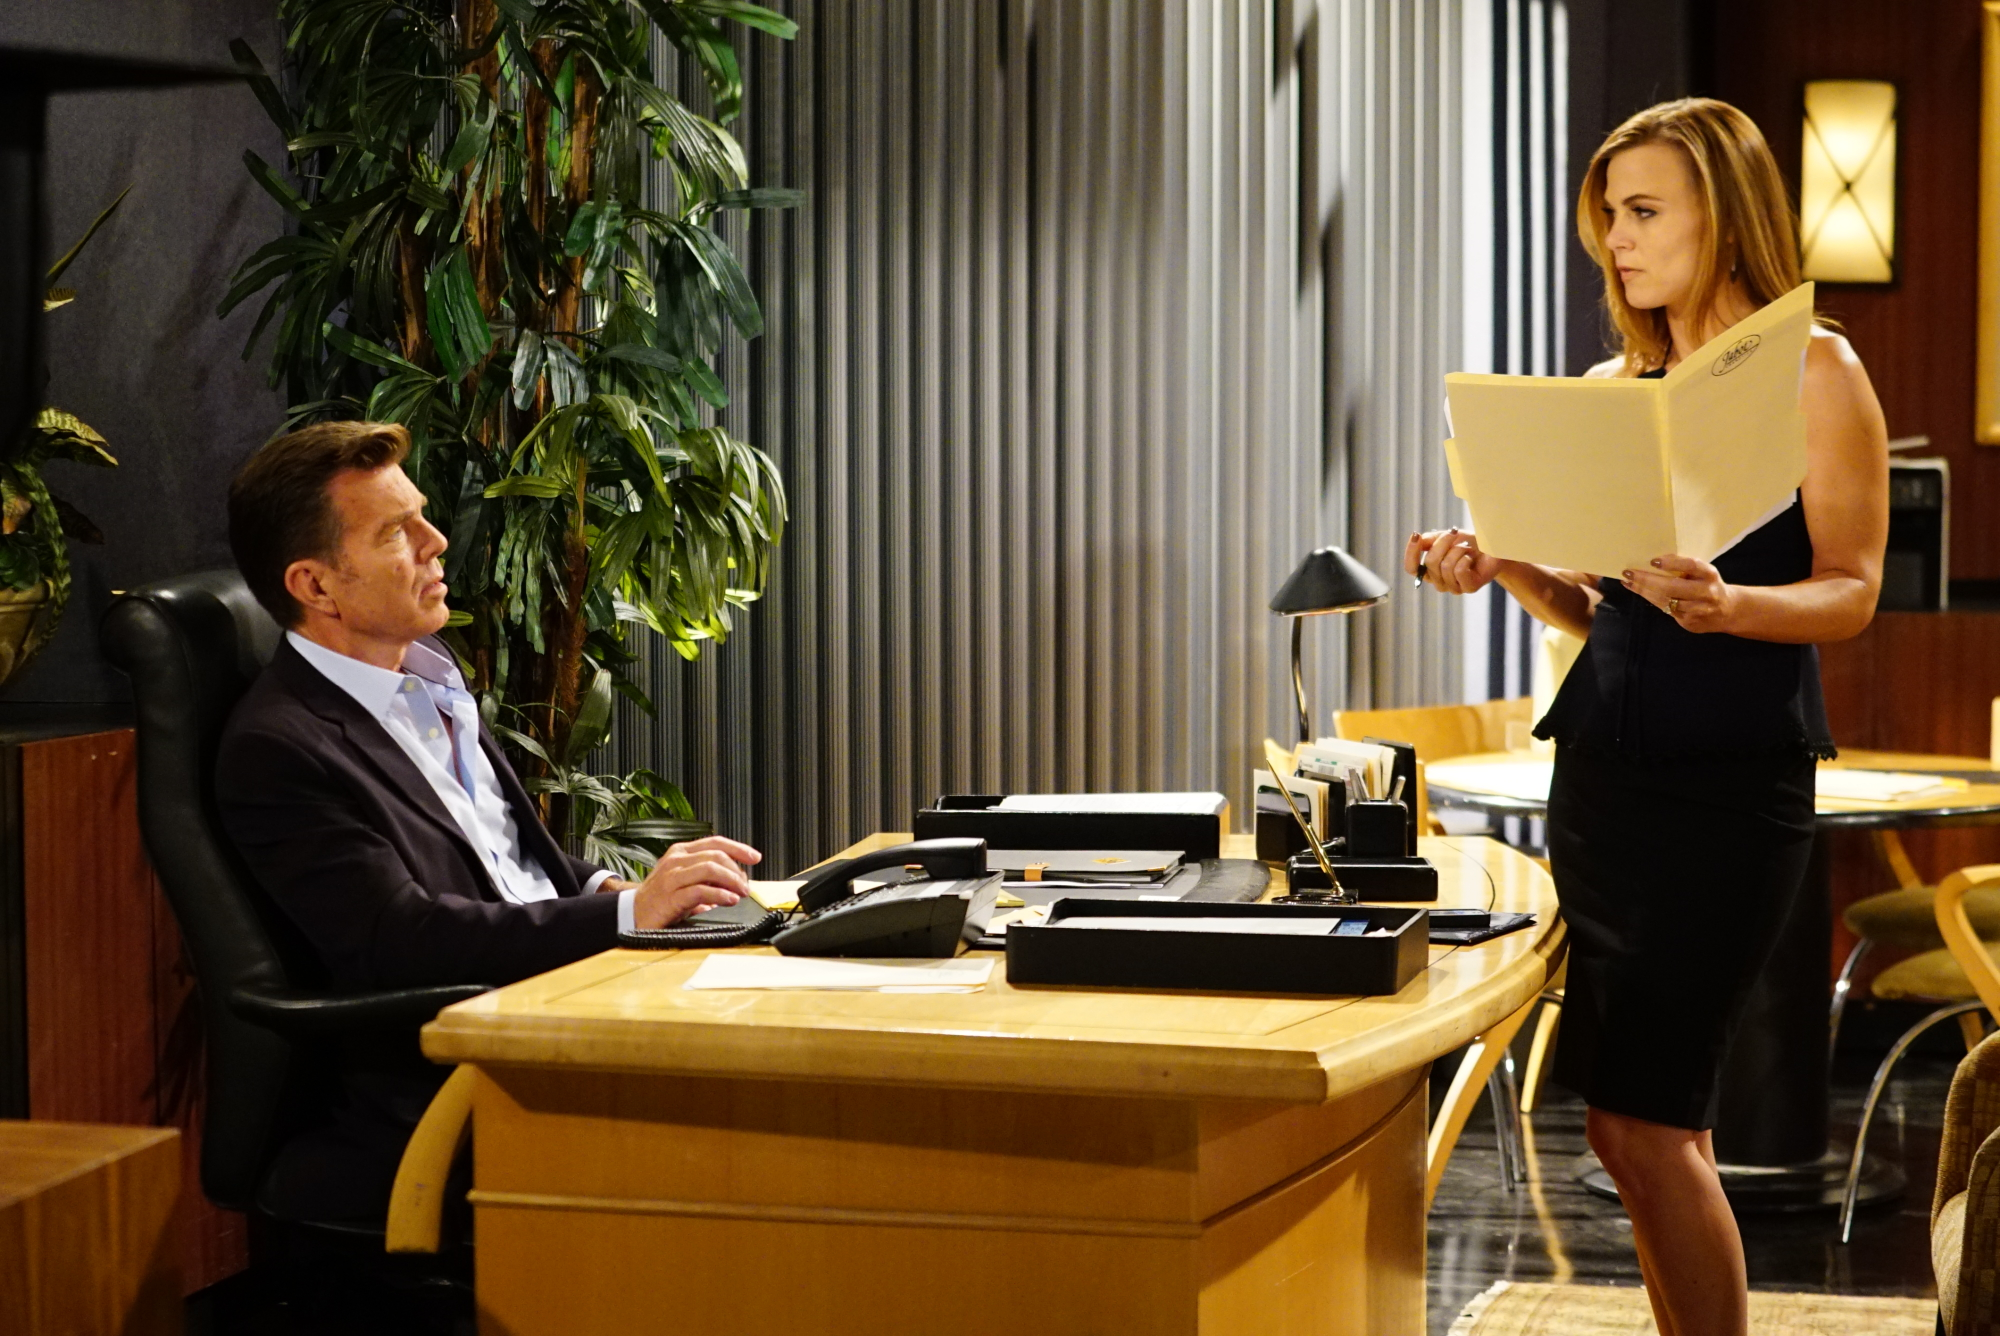 Jack (Peter Bergman) and Phyllis (Gina Tognoni) acting a scene on The Young and the Restless